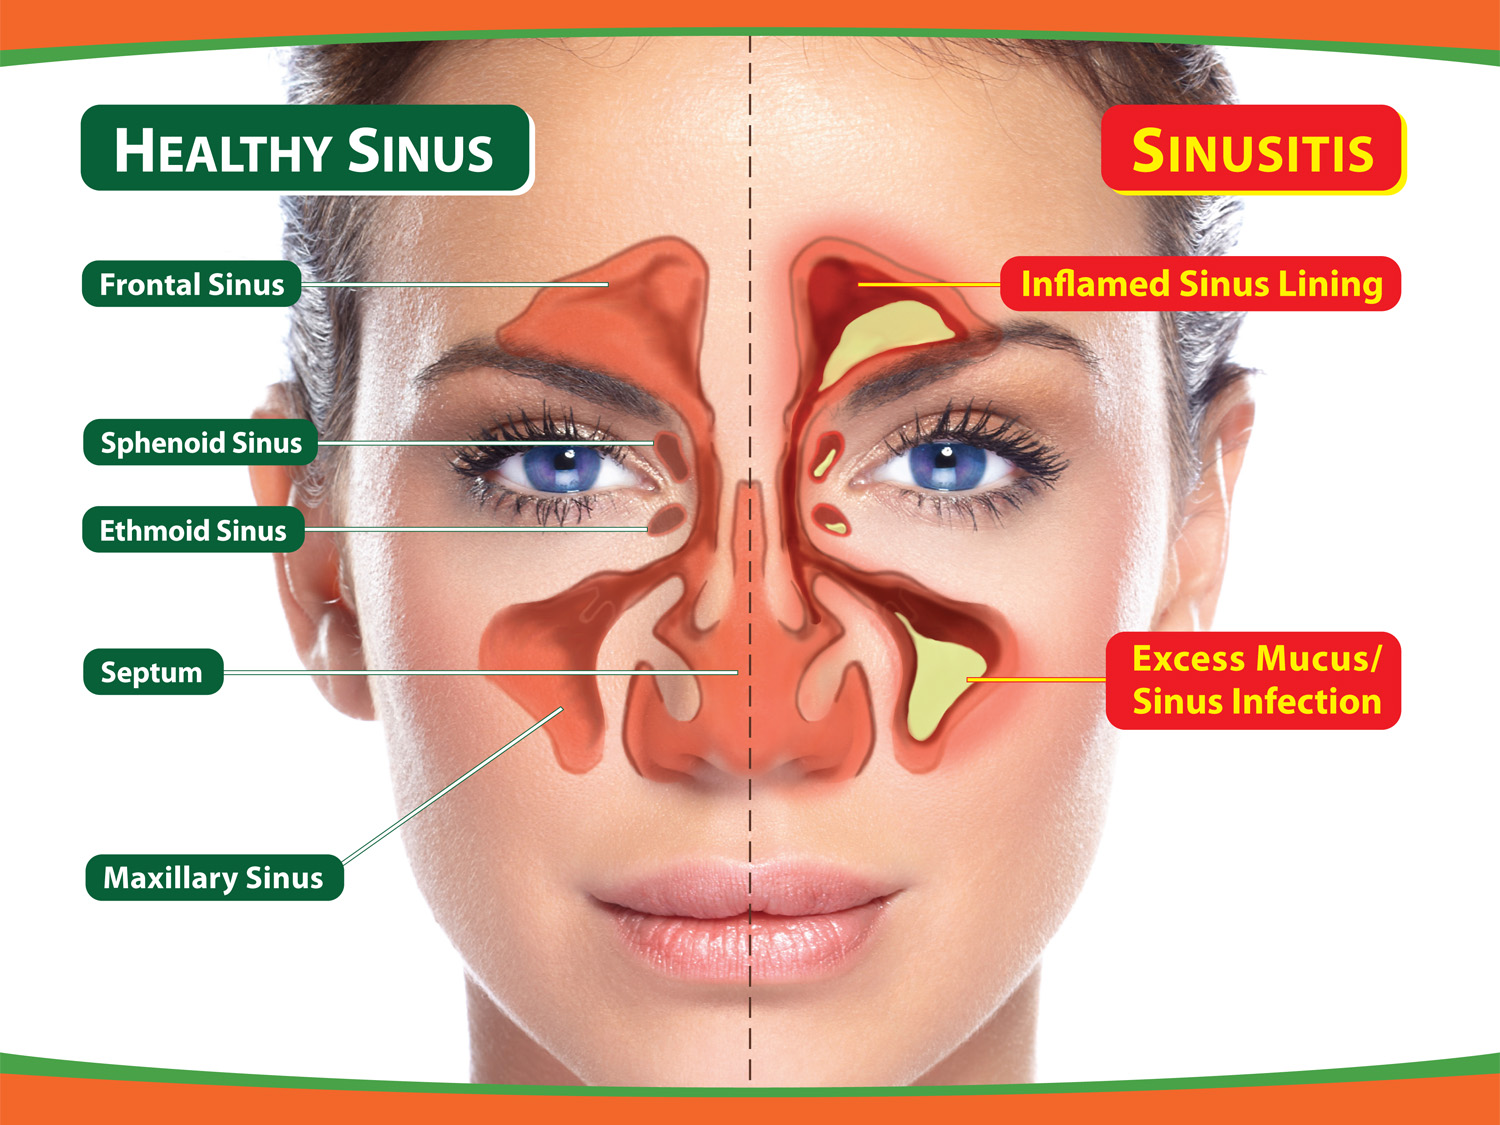 How To Get Rid Of A Bacterial Sinus Infection Naturally